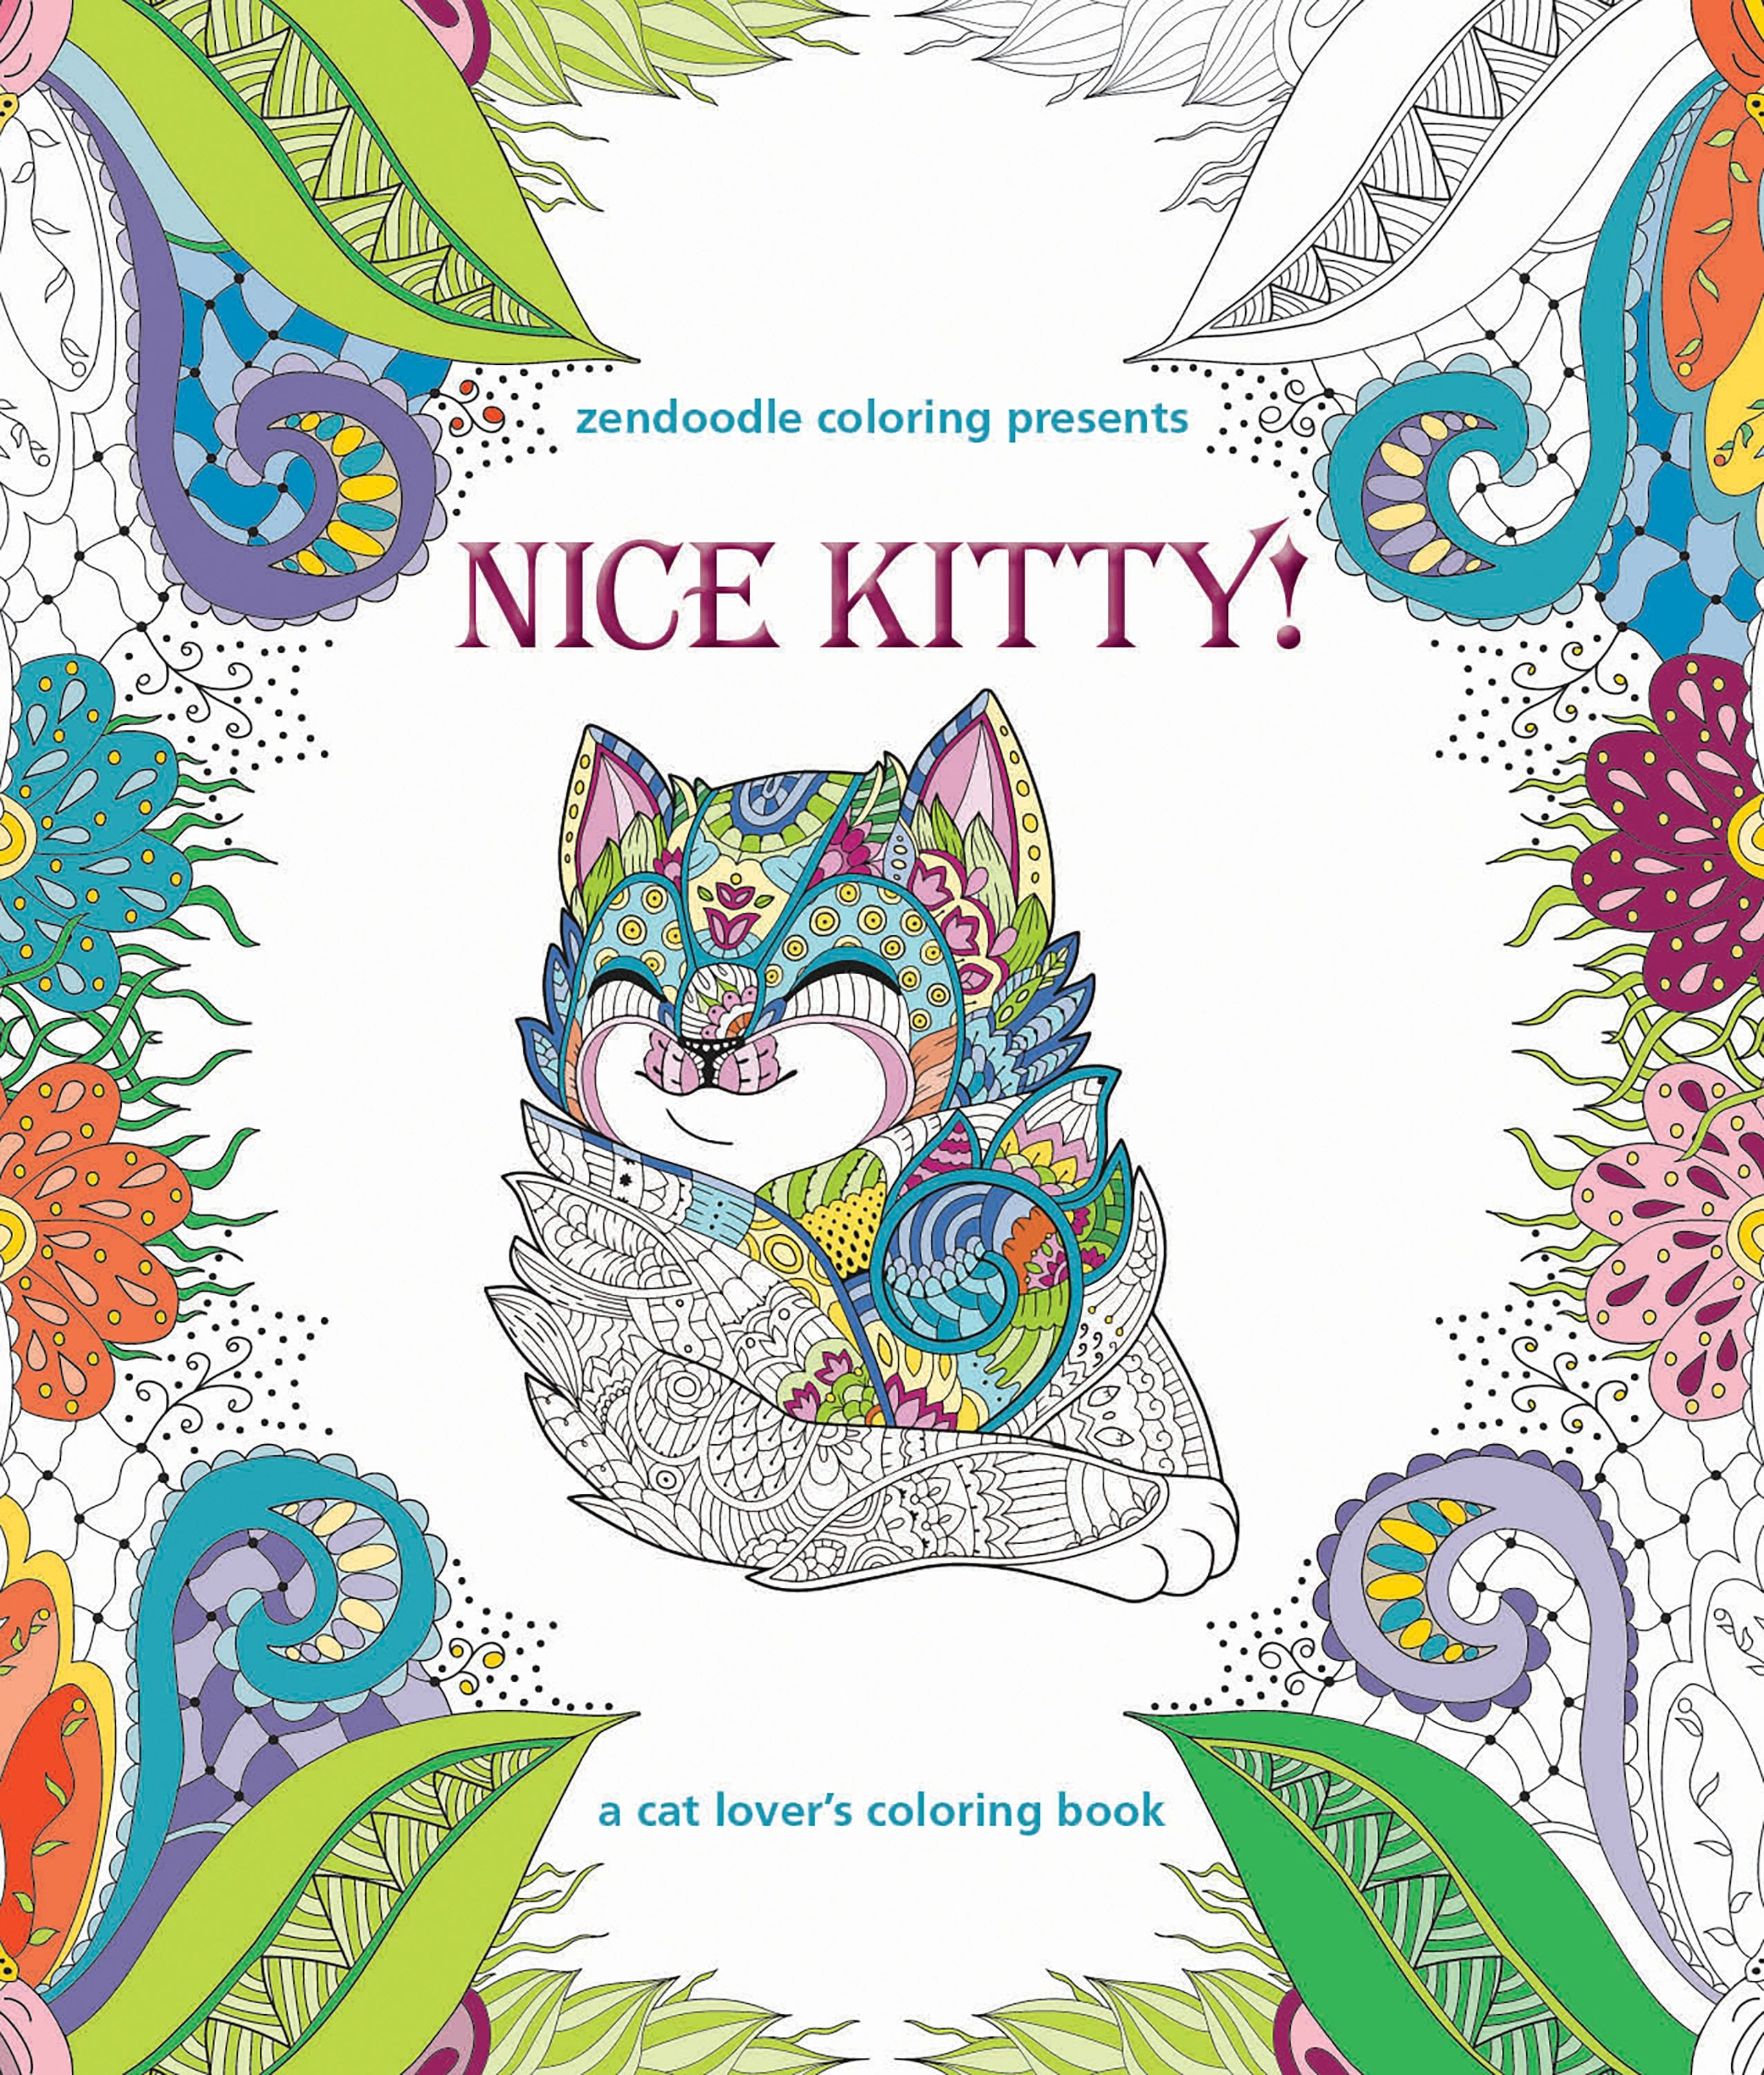 Image of Zendoodle Coloring Presents Nice Kitty!